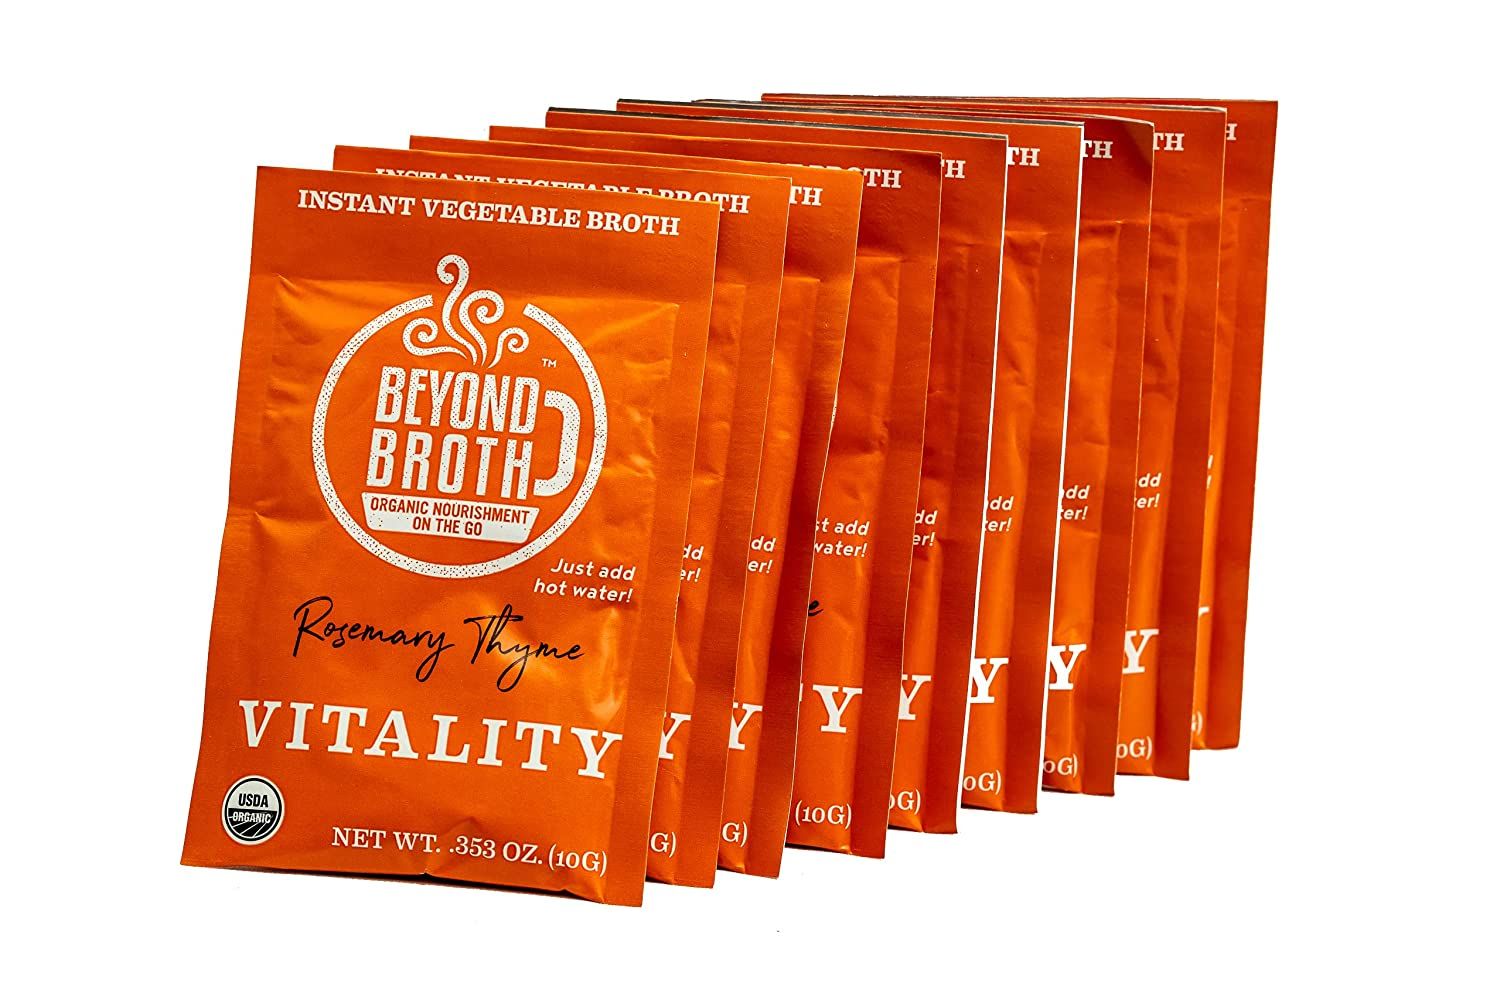 BEYOND BROTH Organic Vegan Vegetable with Sipping Fort Worth Mall Instant Broth Rare